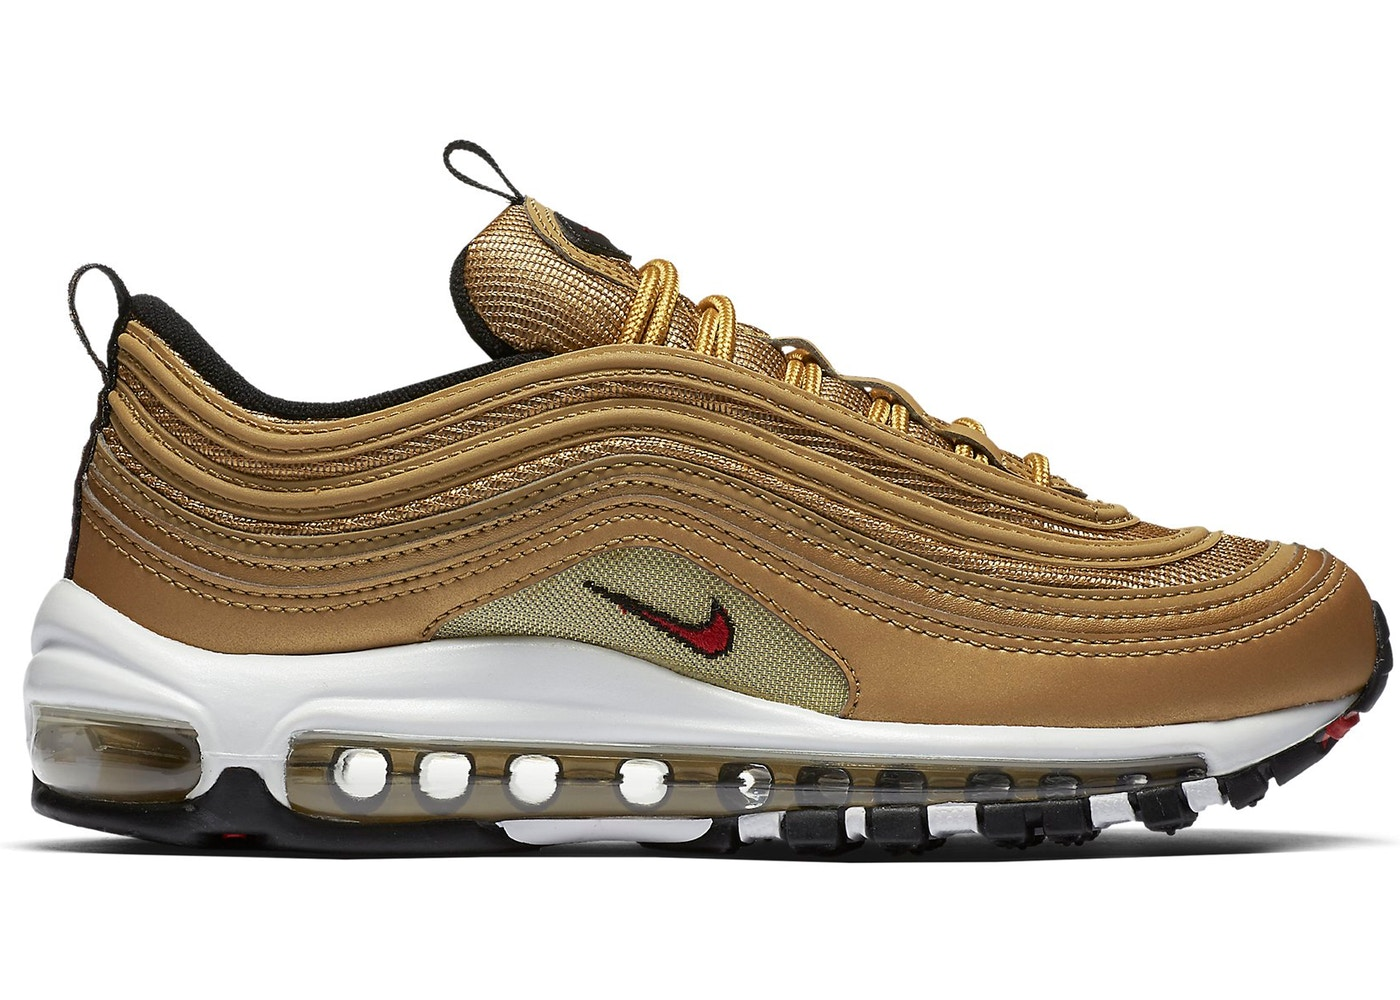 hot sale online 33a45 fbd97 Air Max 97 Metallic Gold (W) (2017/2018)